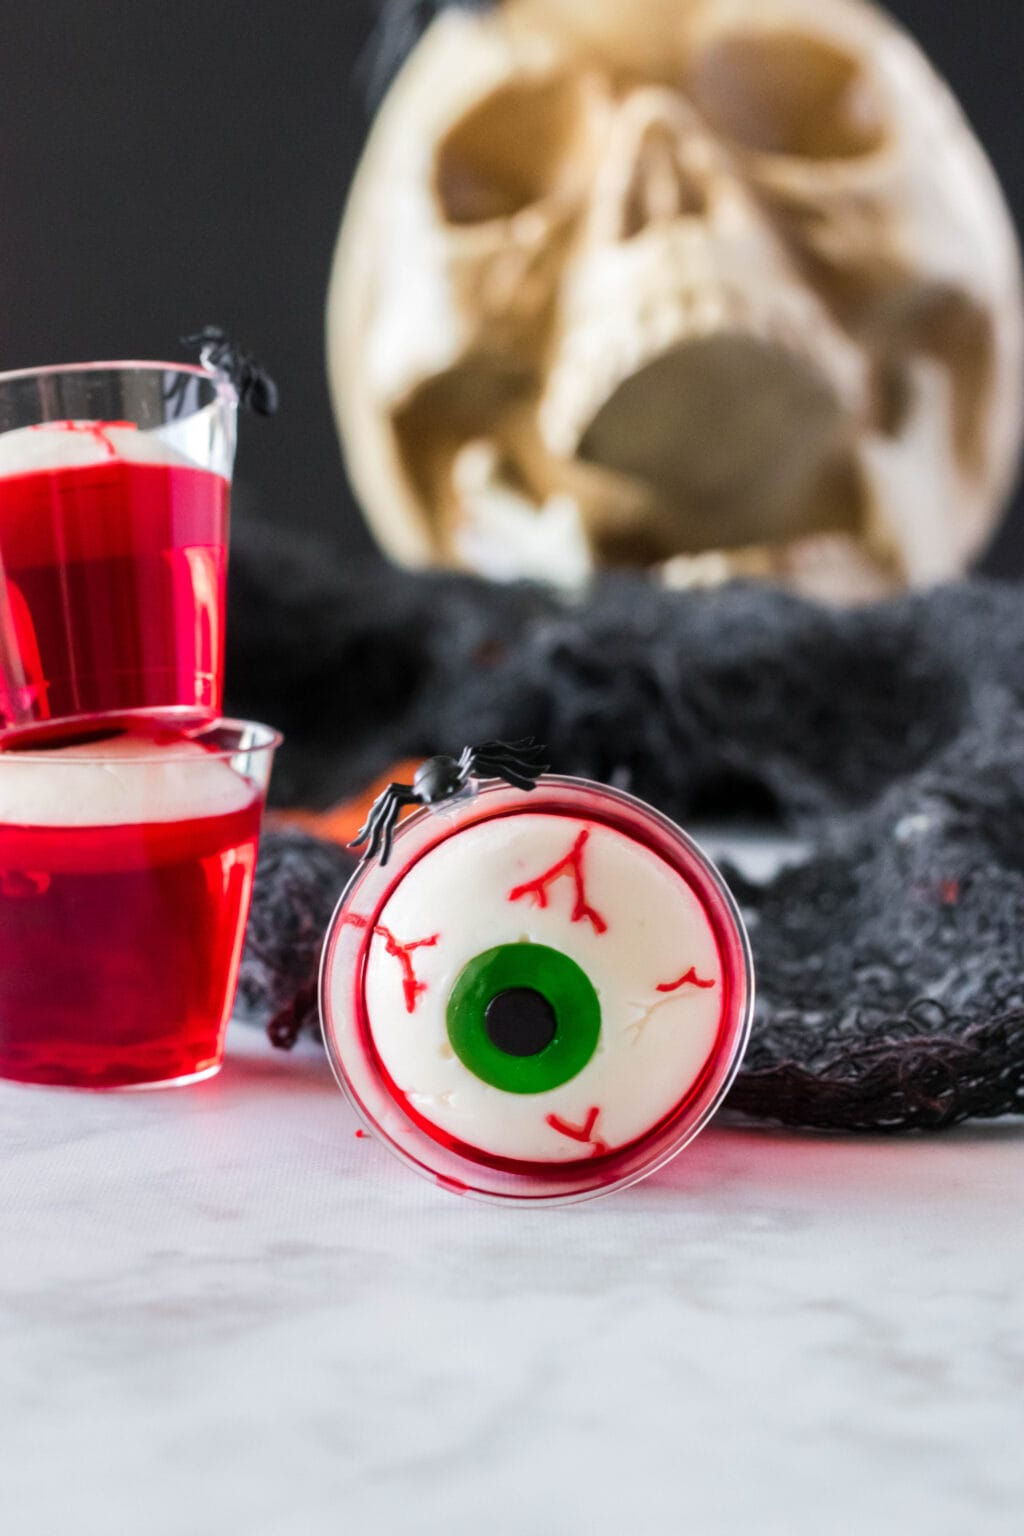 upclose photo of a red jello shot with gummy eyeball